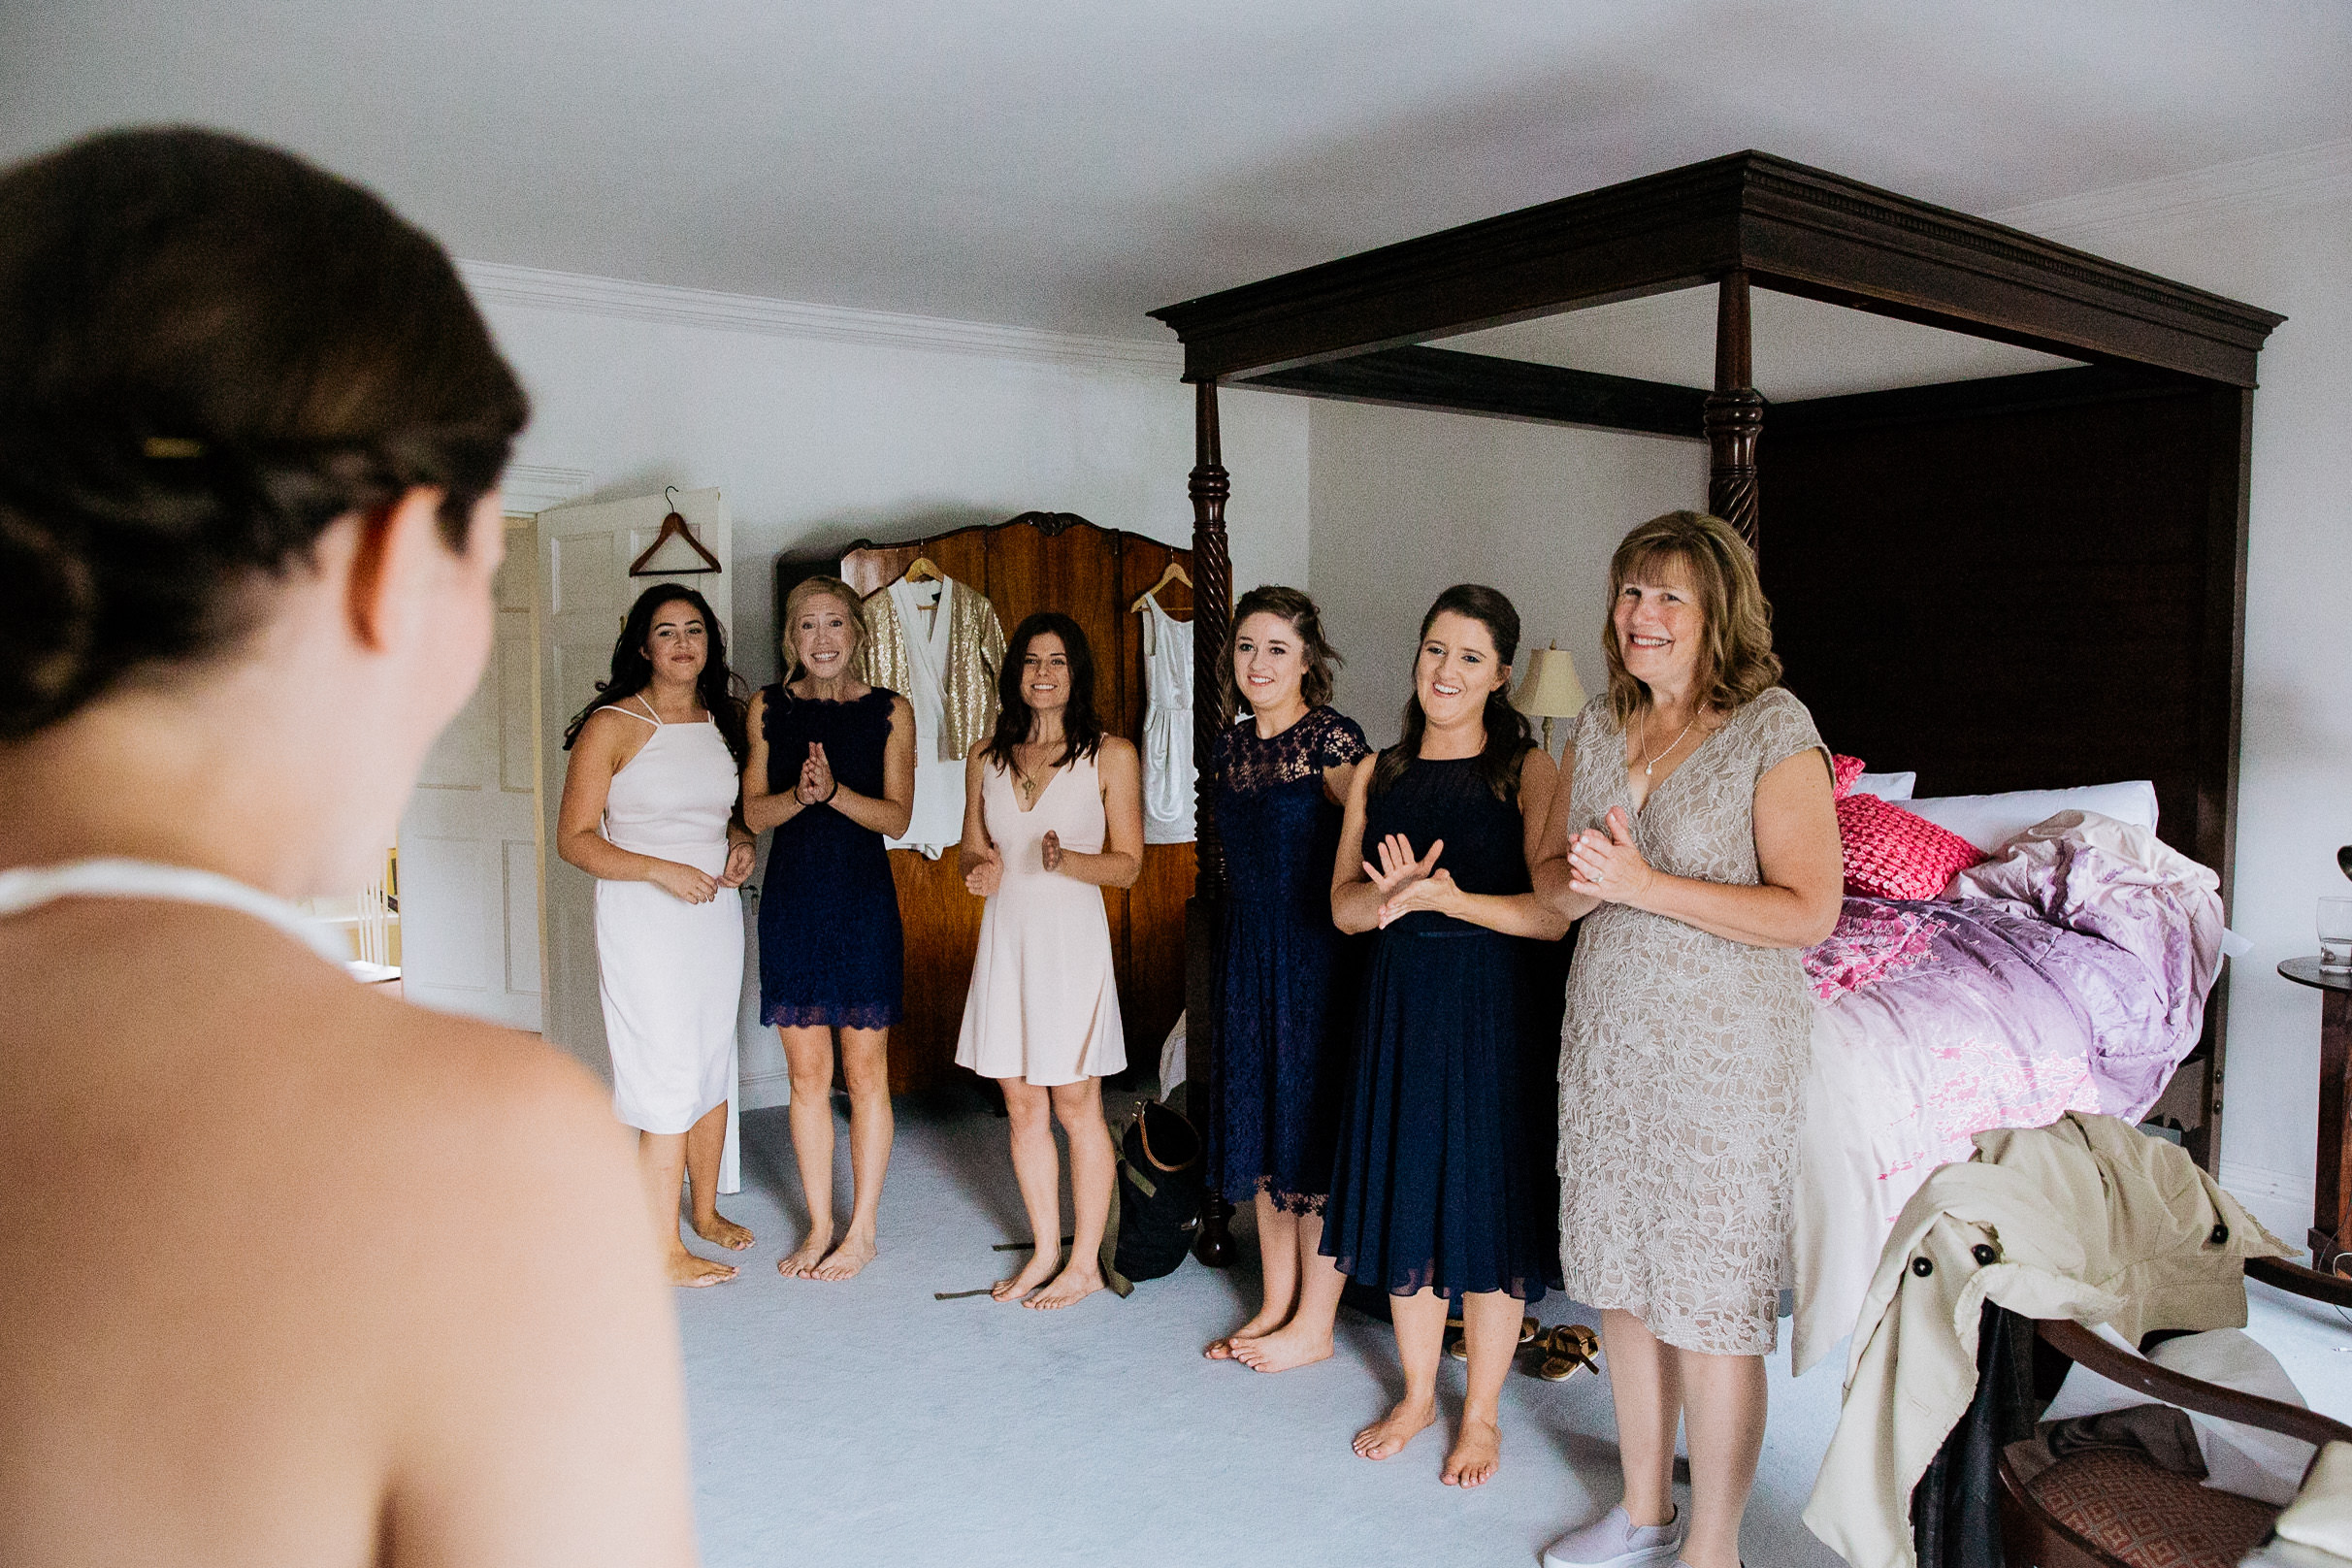 clairebyrnephotography-fun-wedding-photographer-ireland-creative-129.jpg